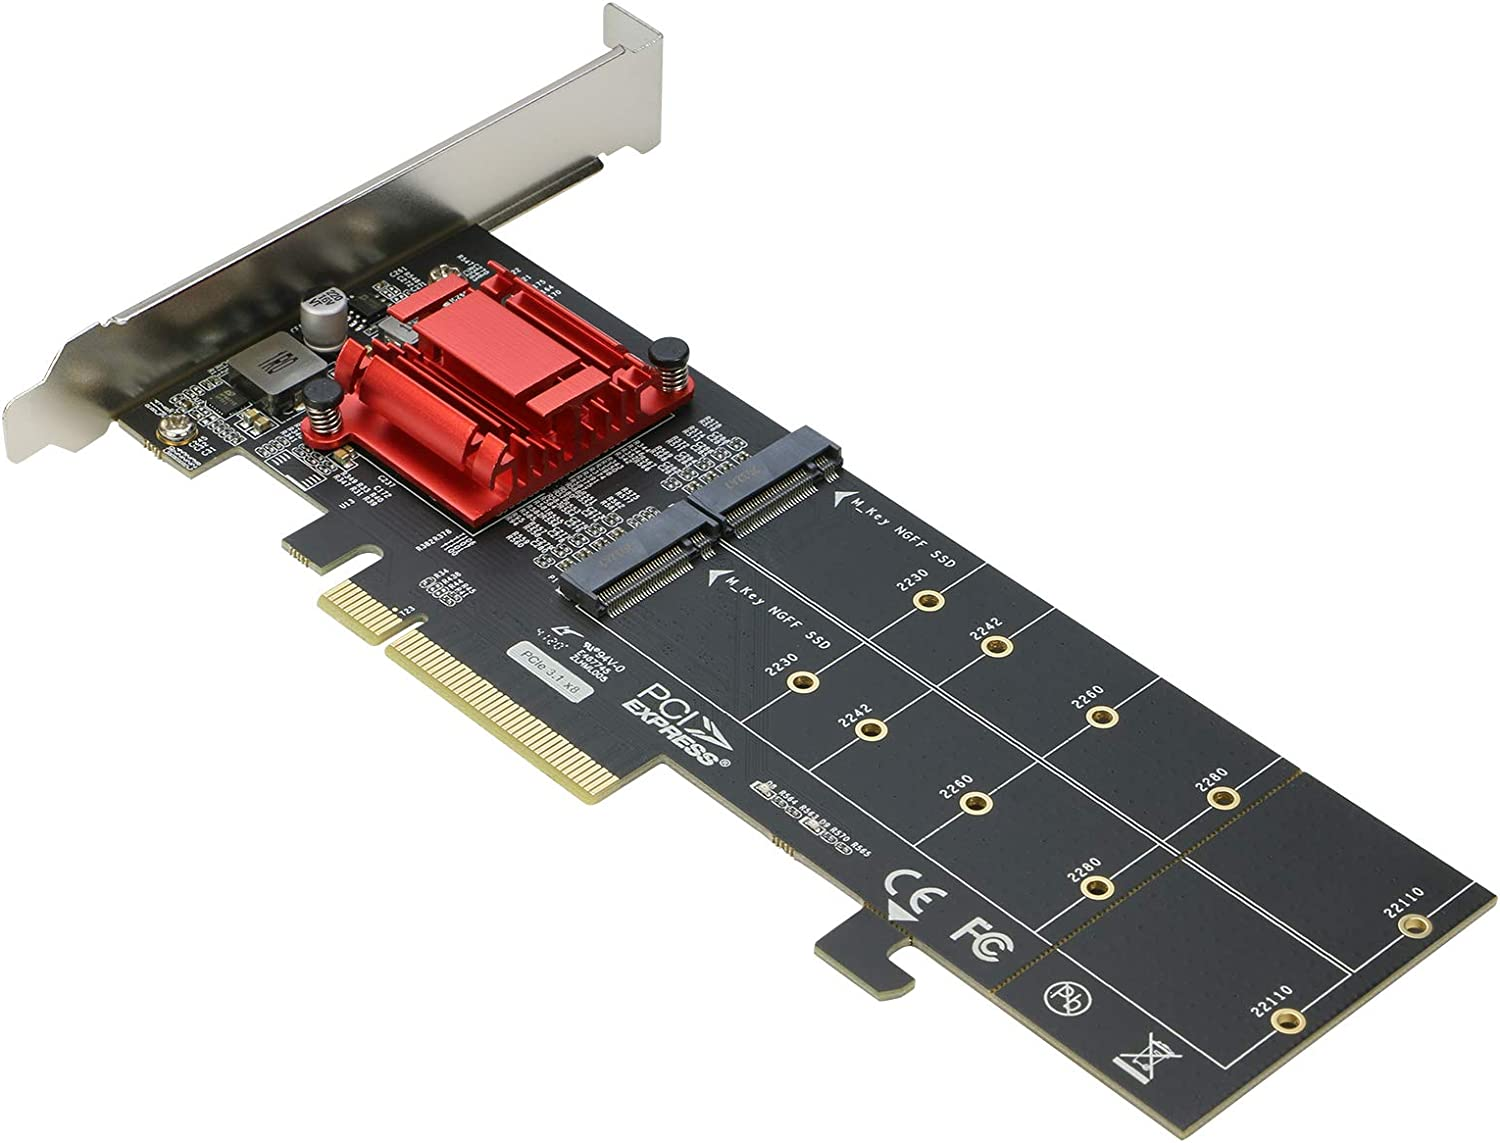 Some reservation Dual NVMe PCIe Adapter RIITOP M.2 to x8 Topics on TV PCI-e SSD 3.1 x16